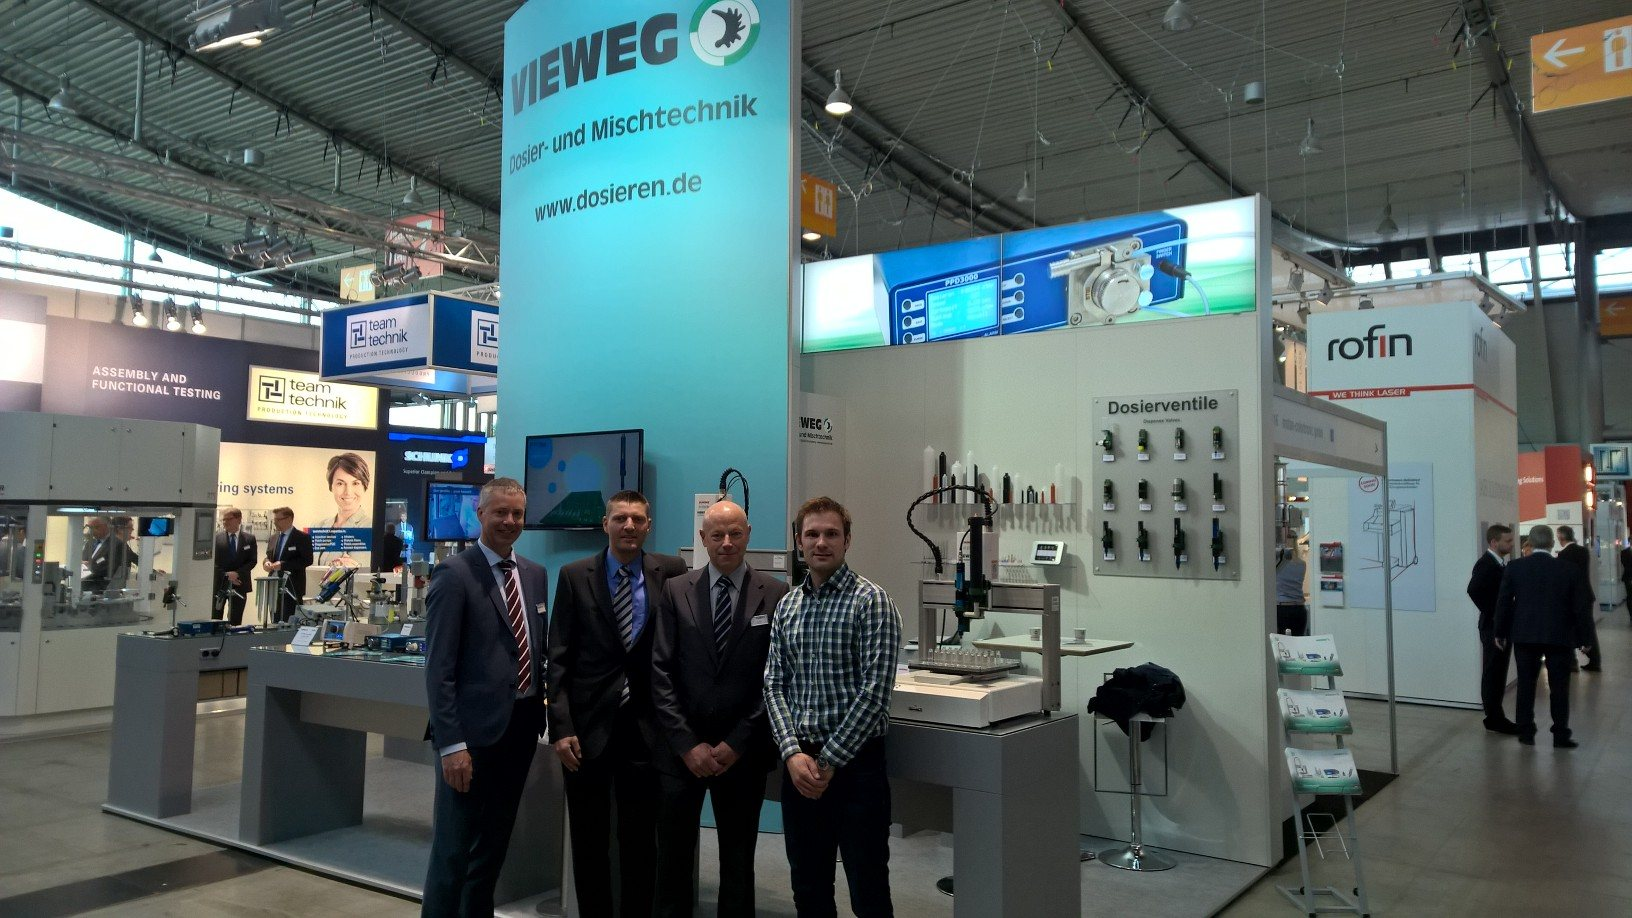 Vieweg Team and Felix Gruber from preeflow at the Medtec Europe